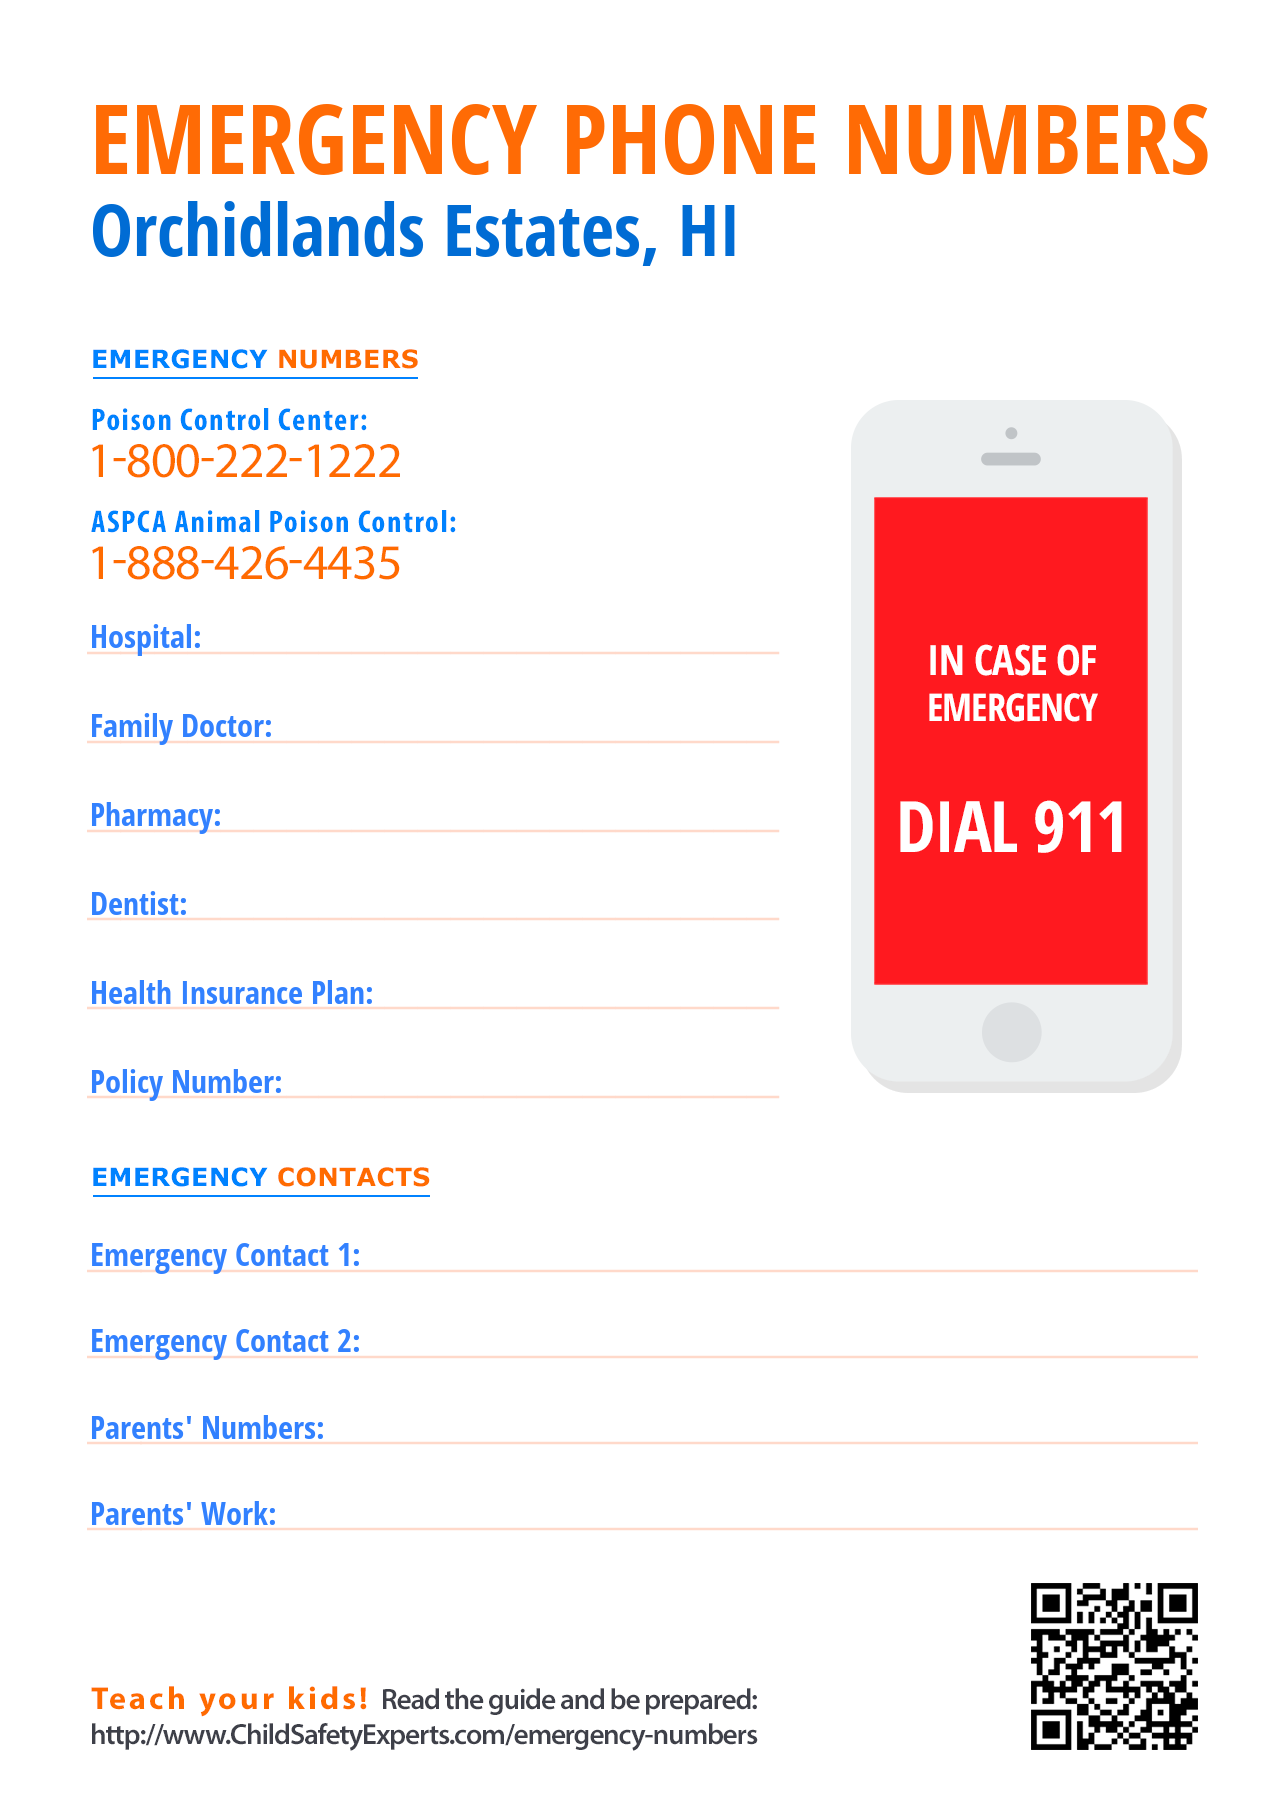 Important emergency phone numbers in Orchidlands Estates, Hawaii